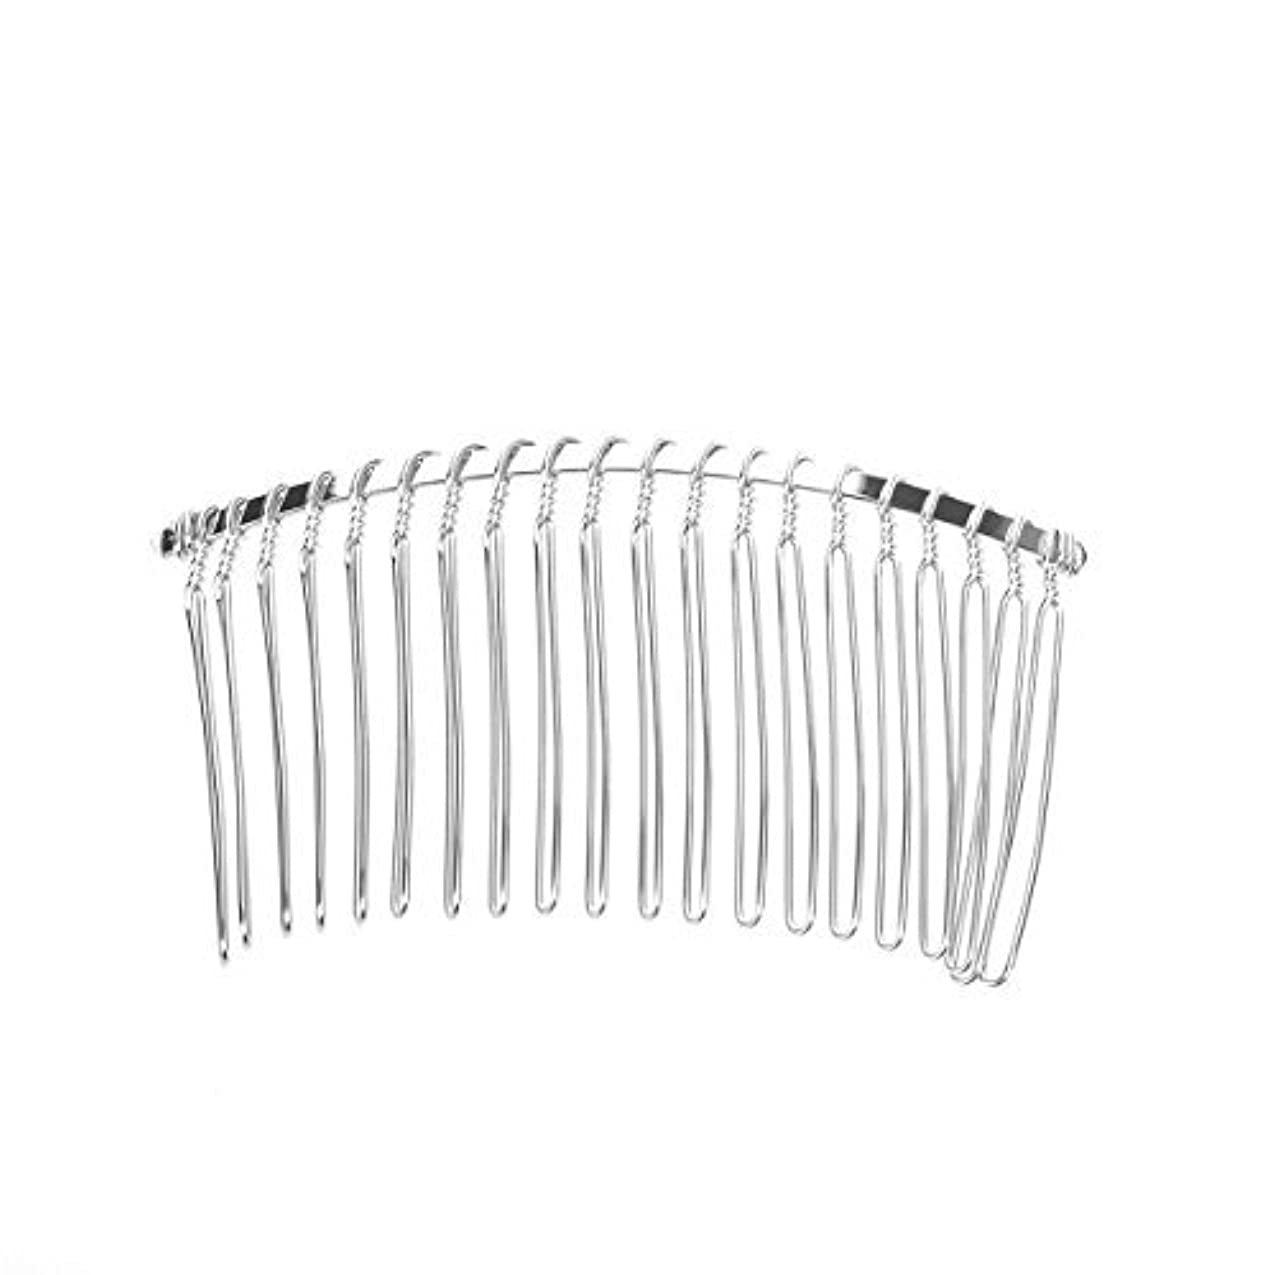 曲がった遡る協定Pixnor 7.8cm 20 Teeth Fancy DIY Metal Wire Hair Clip Comb Bridal Wedding Veil Comb (Silver) [並行輸入品]